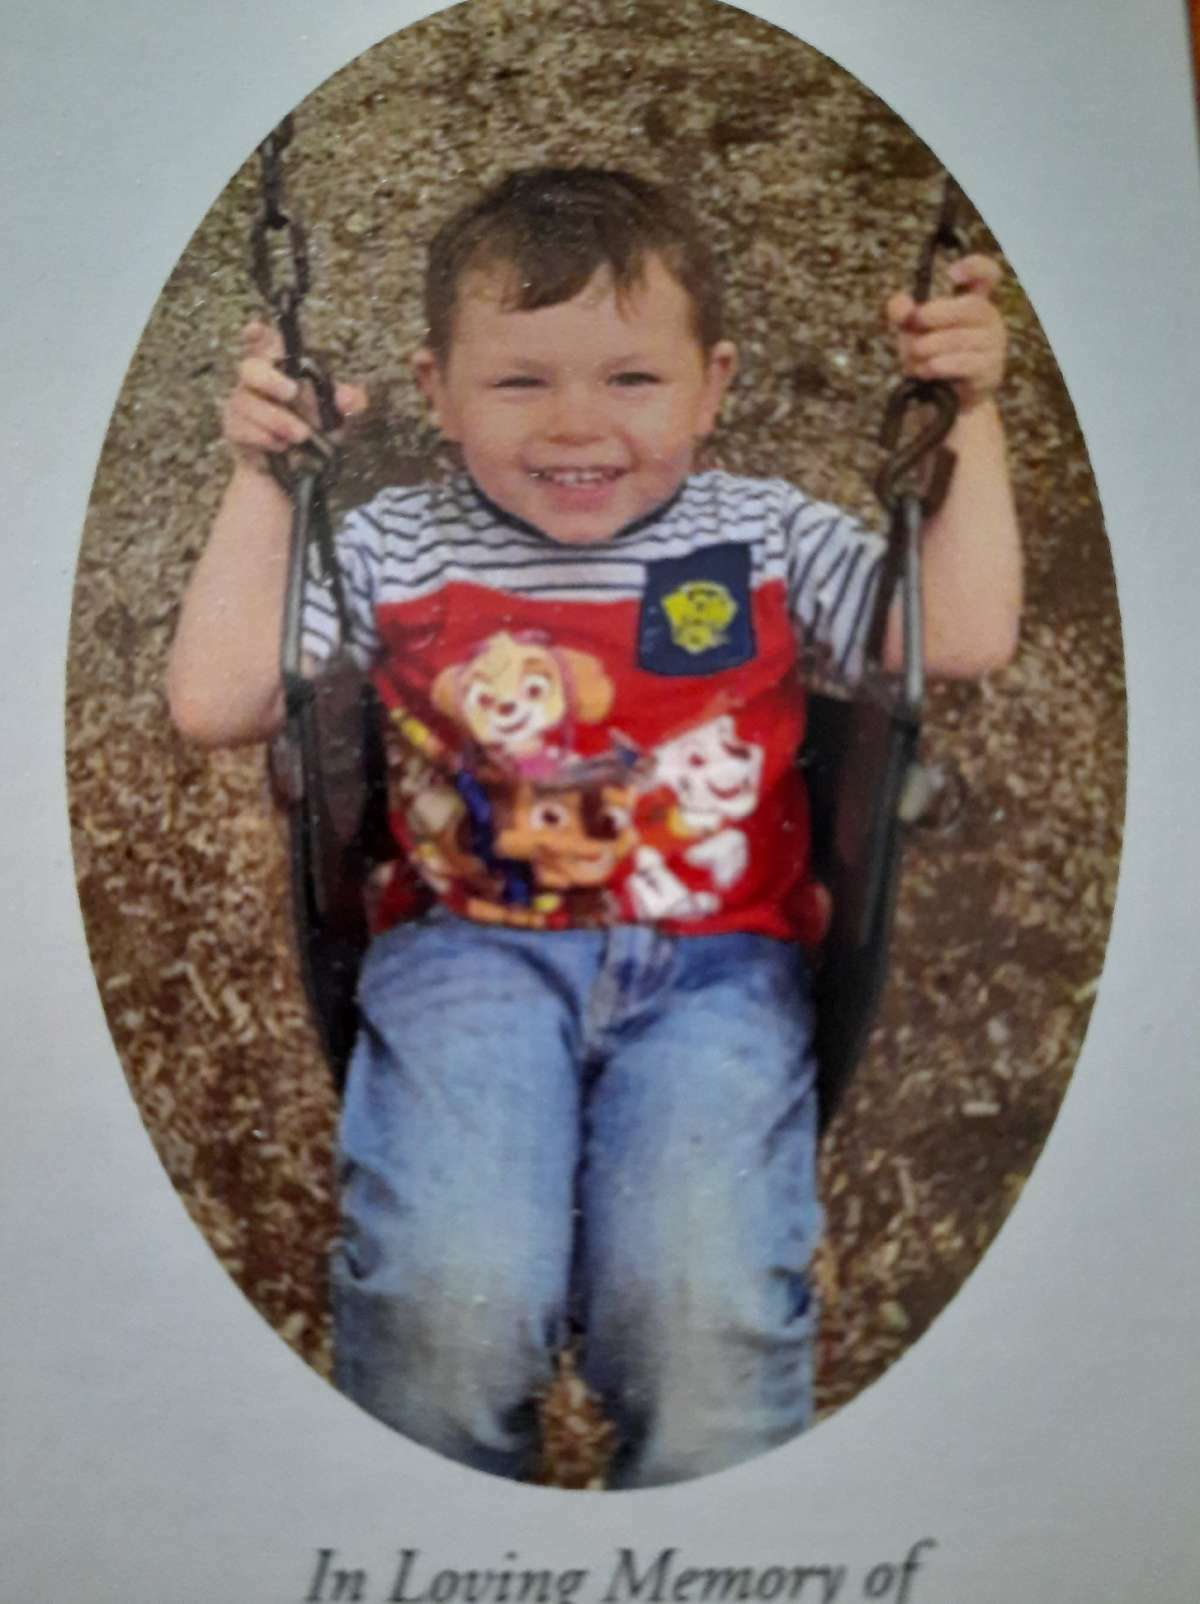 Four-year-old Charlie died on Dec. 20, after, prosecutors said, he was abused at his foster home in Rotterdam.